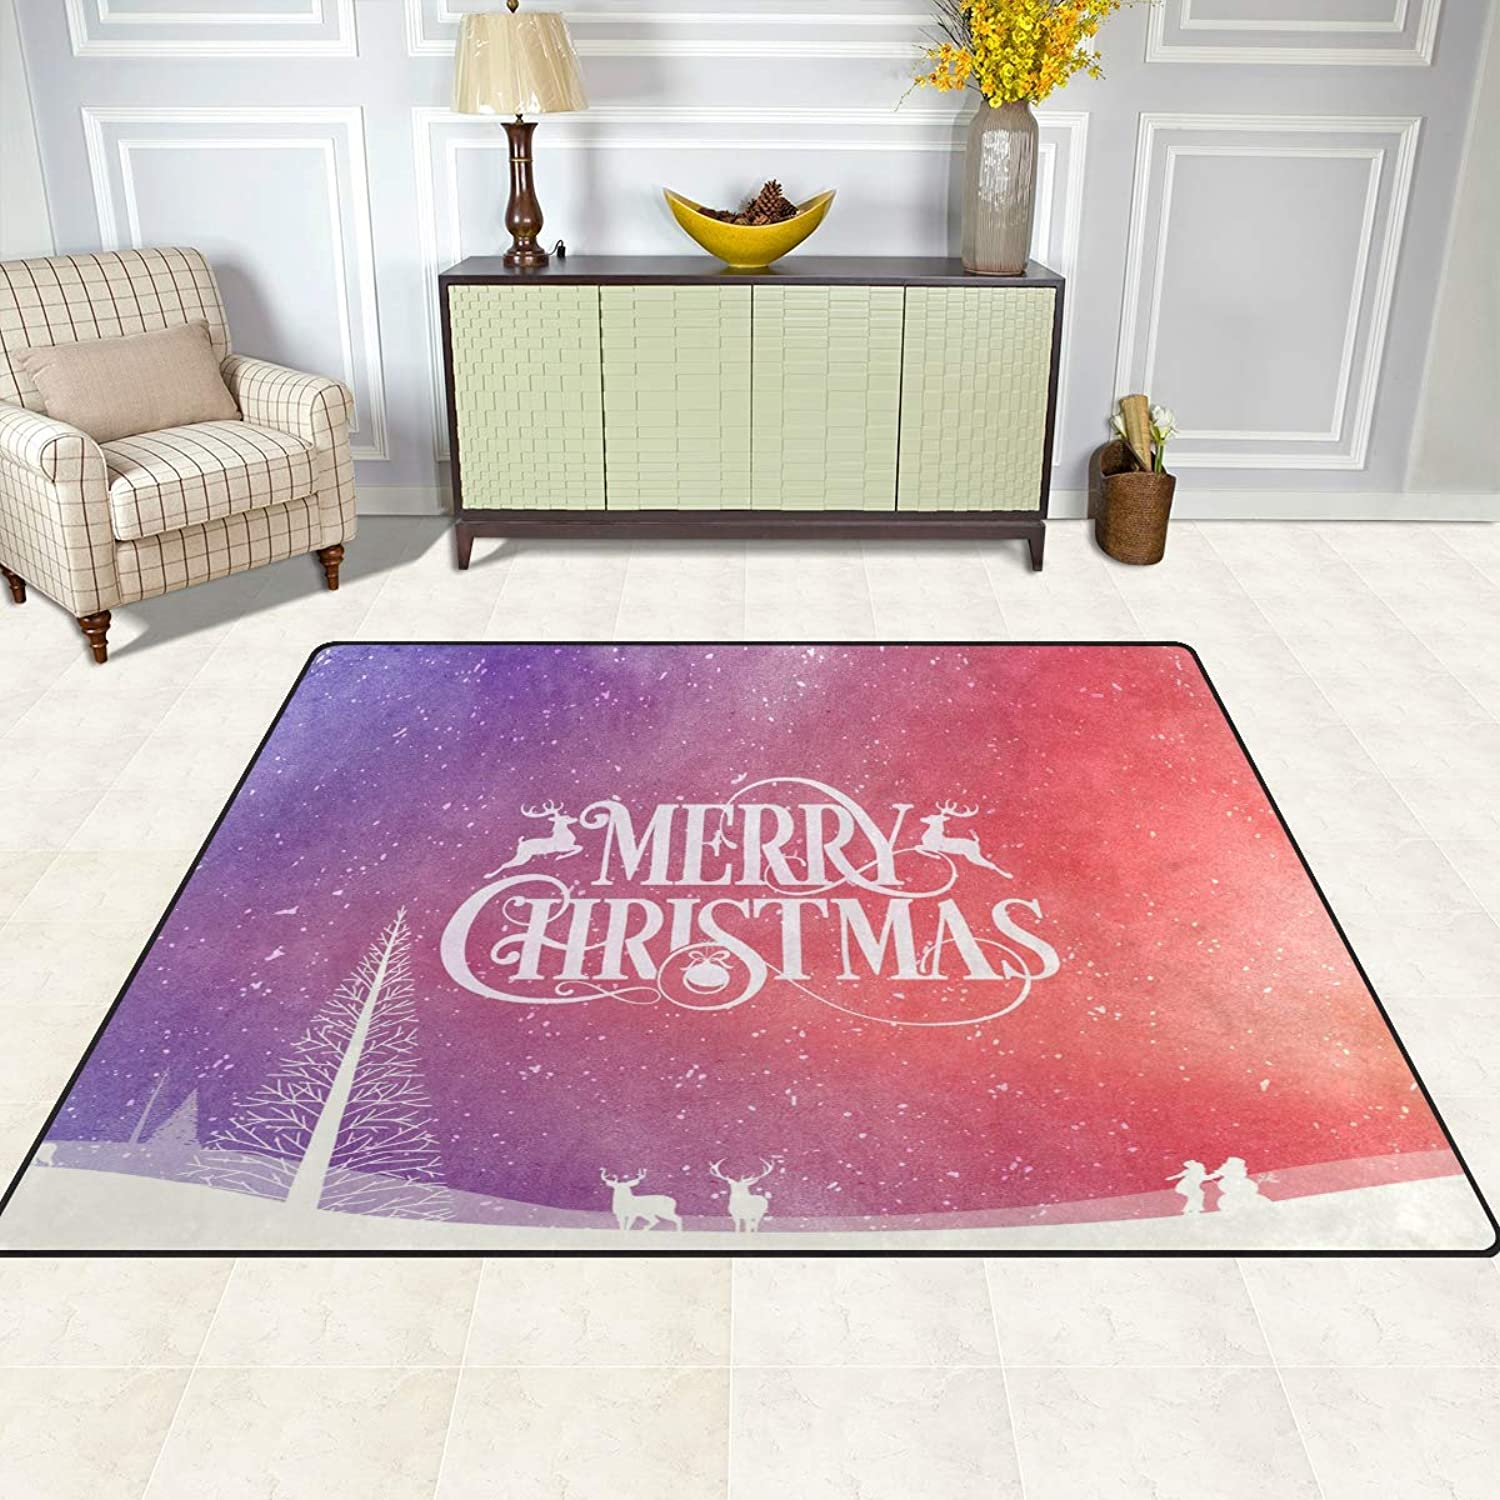 FAJRO Merry Christmas Rugs for entryway Doormat Area Rug Multipattern Door Mat shoes Scraper Home Dec Anti-Slip Indoor Outdoor